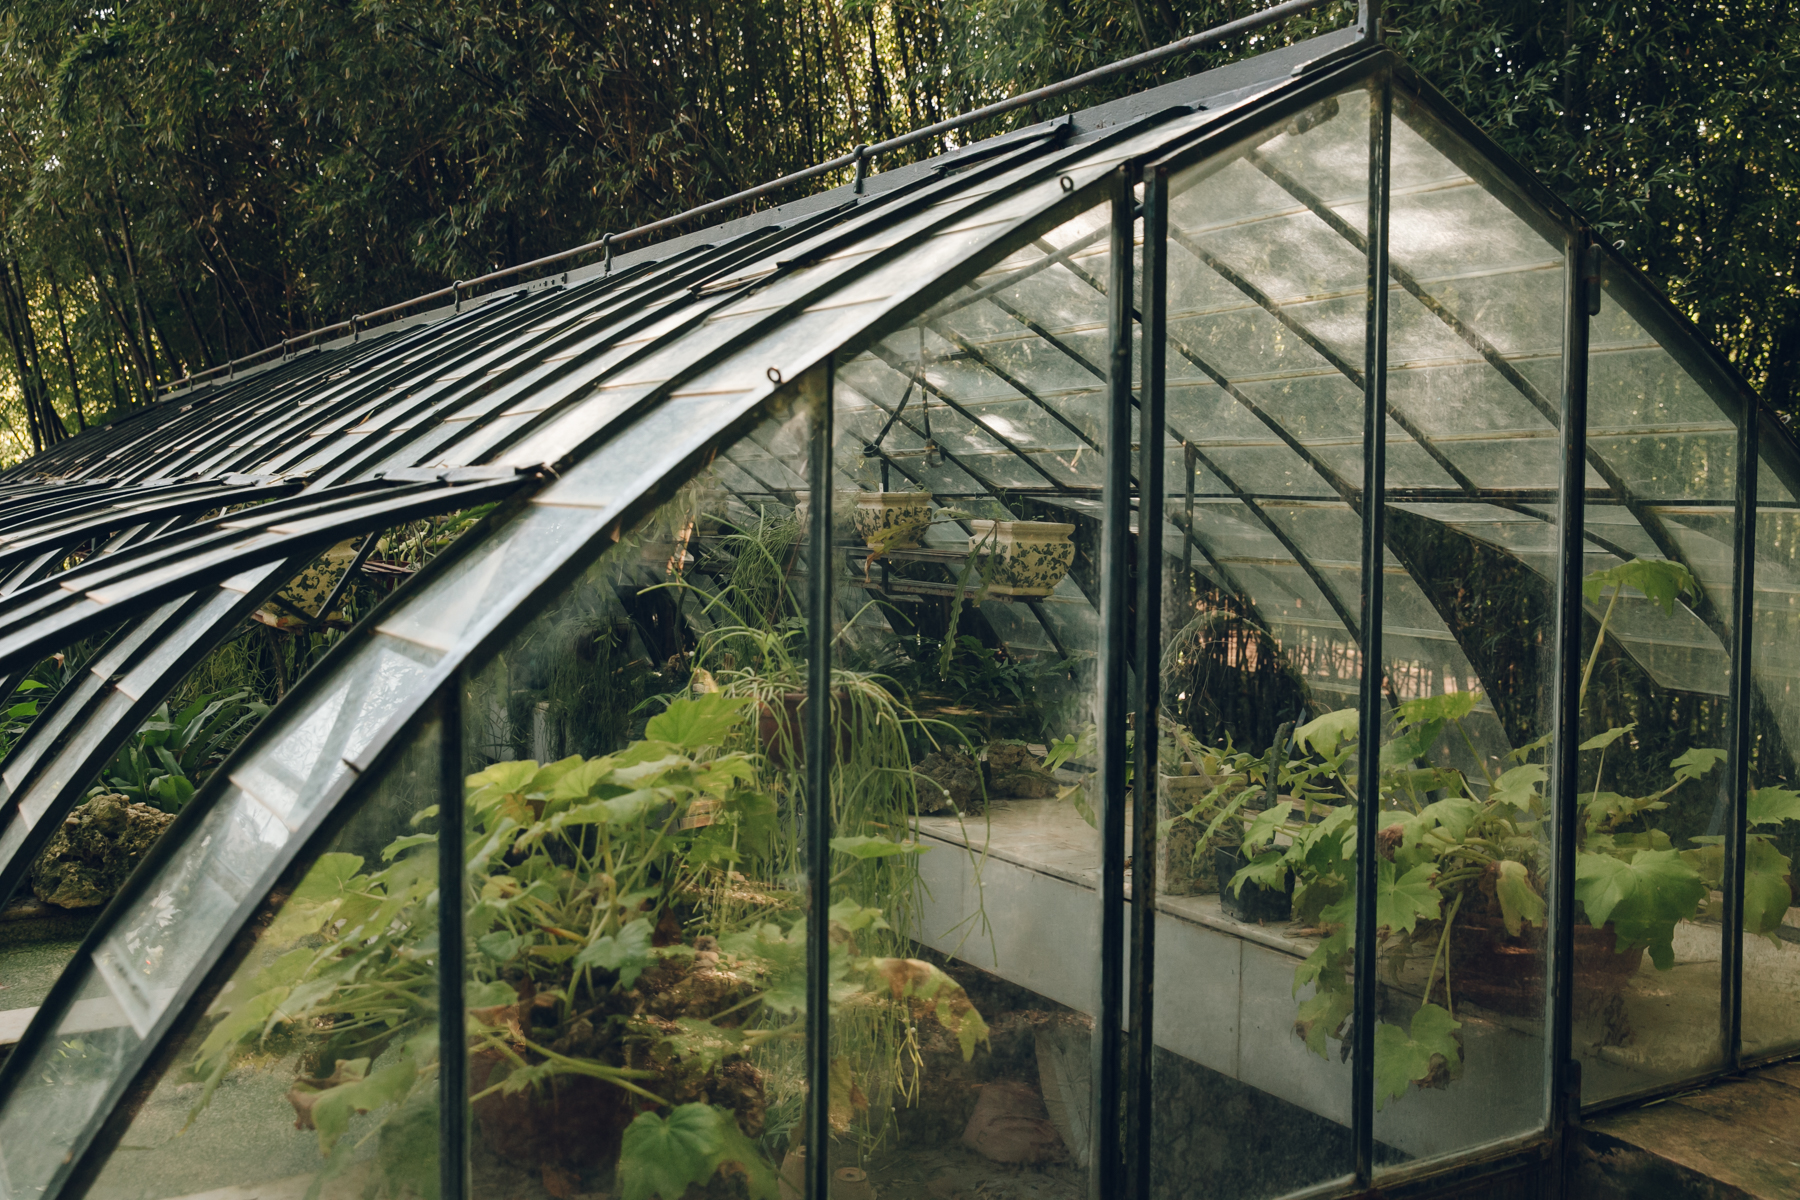 An overgrown greenhouse in Malaga botanical gardens.